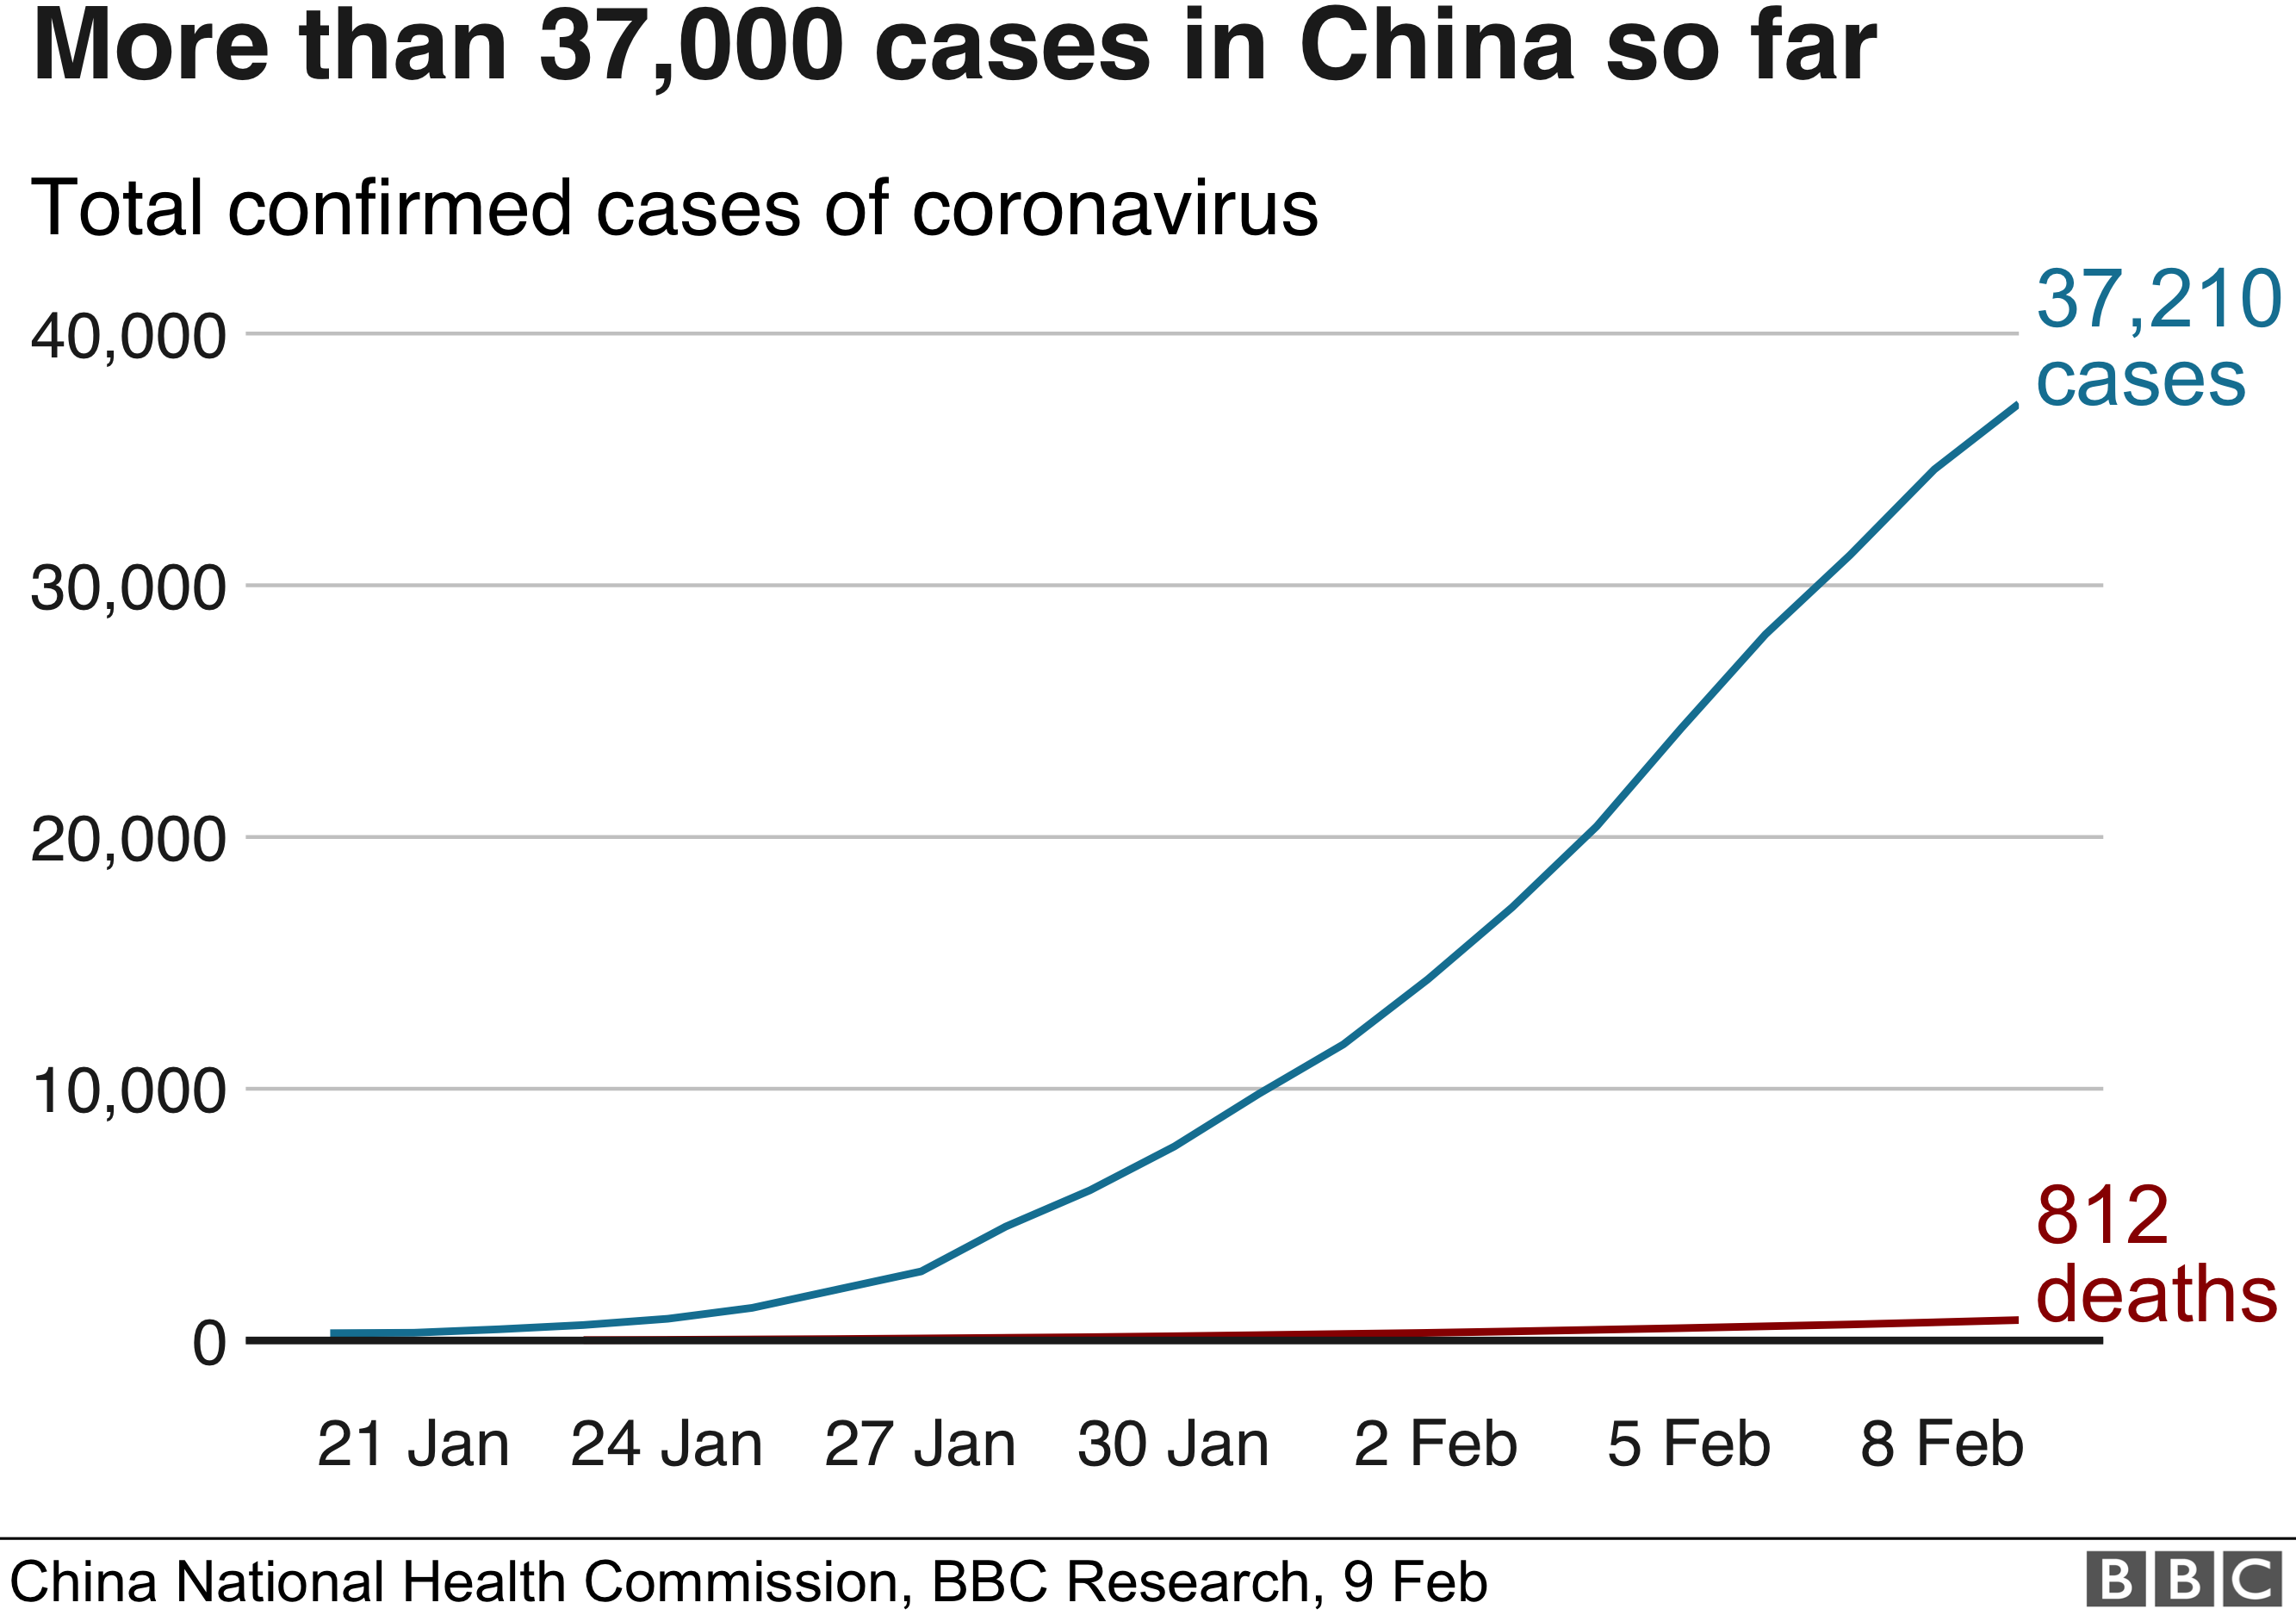 Graph showing total confirmed cases at 9 February 2020: 812 deaths and 37,210 cases